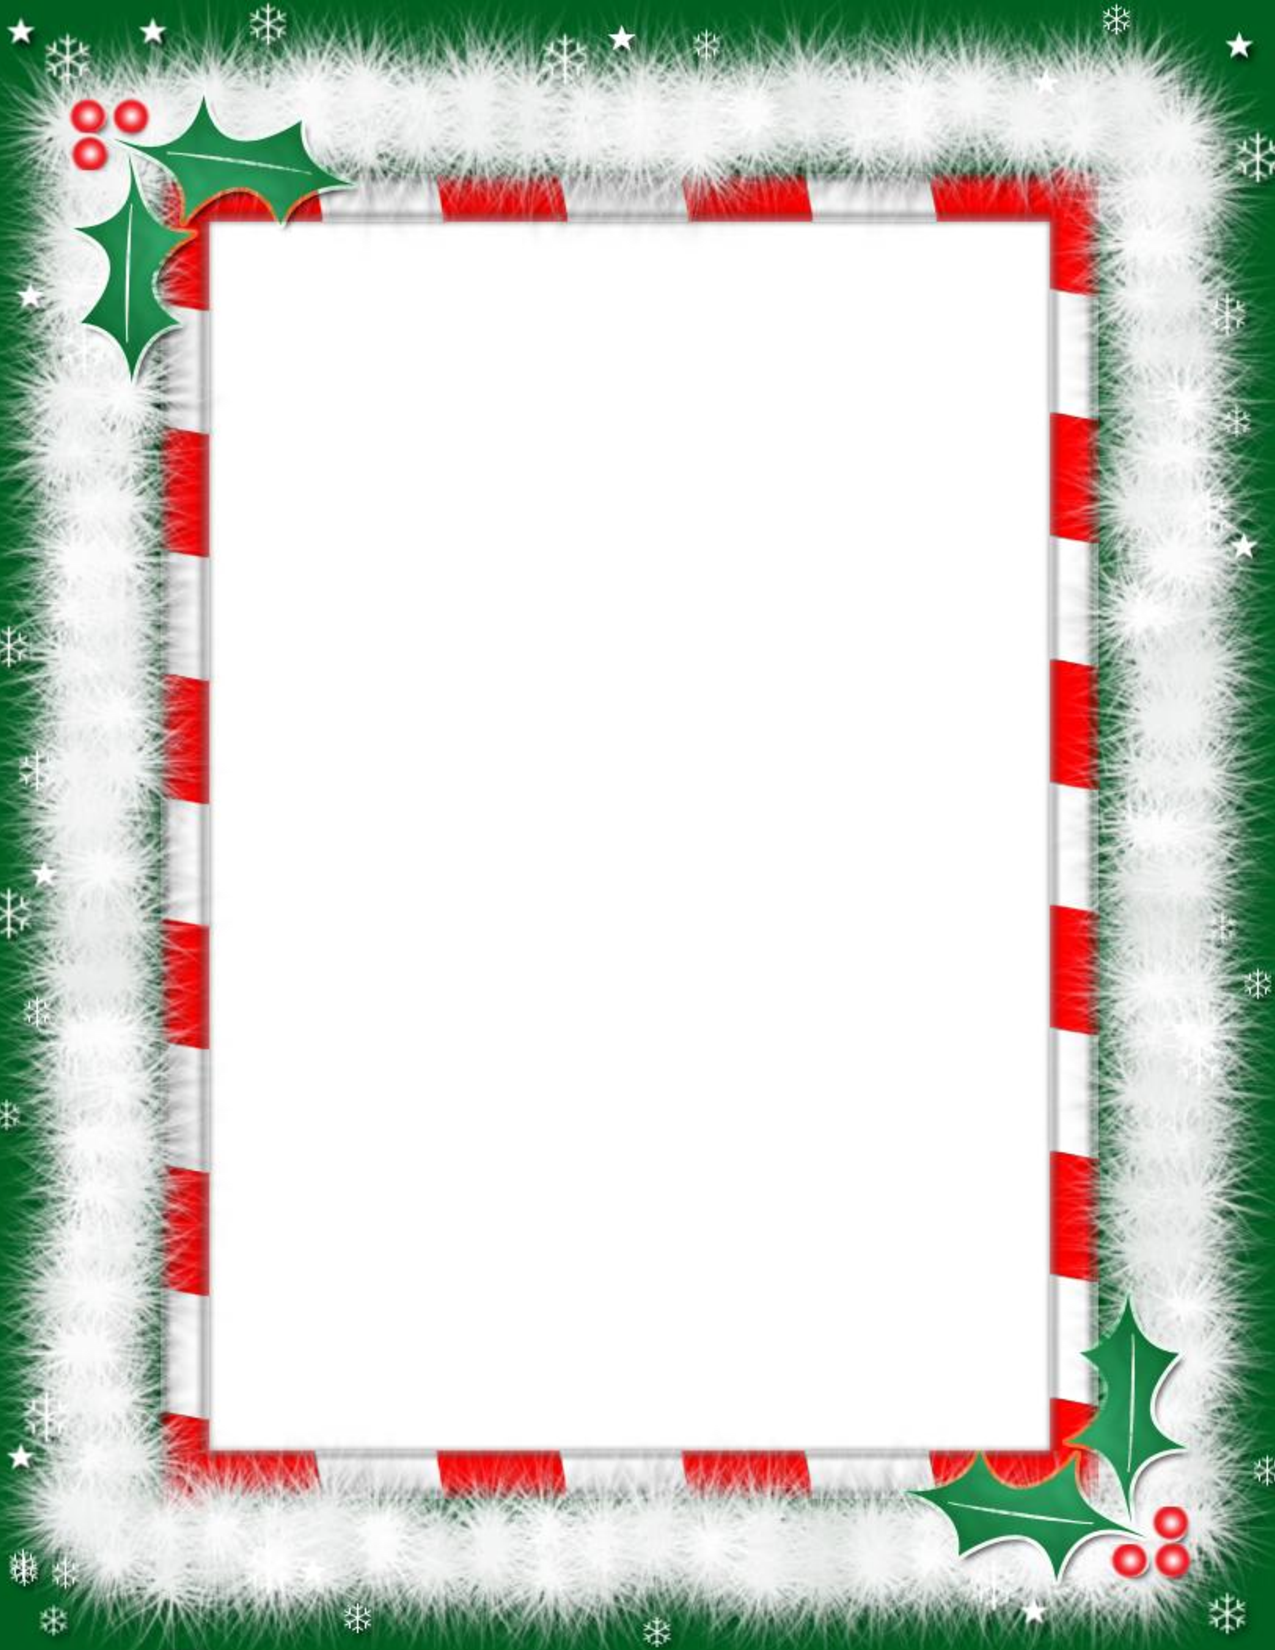 Free Christmas Letter Templates Microsoft Word   Google Search  Microsoft Word Christmas Letter Template